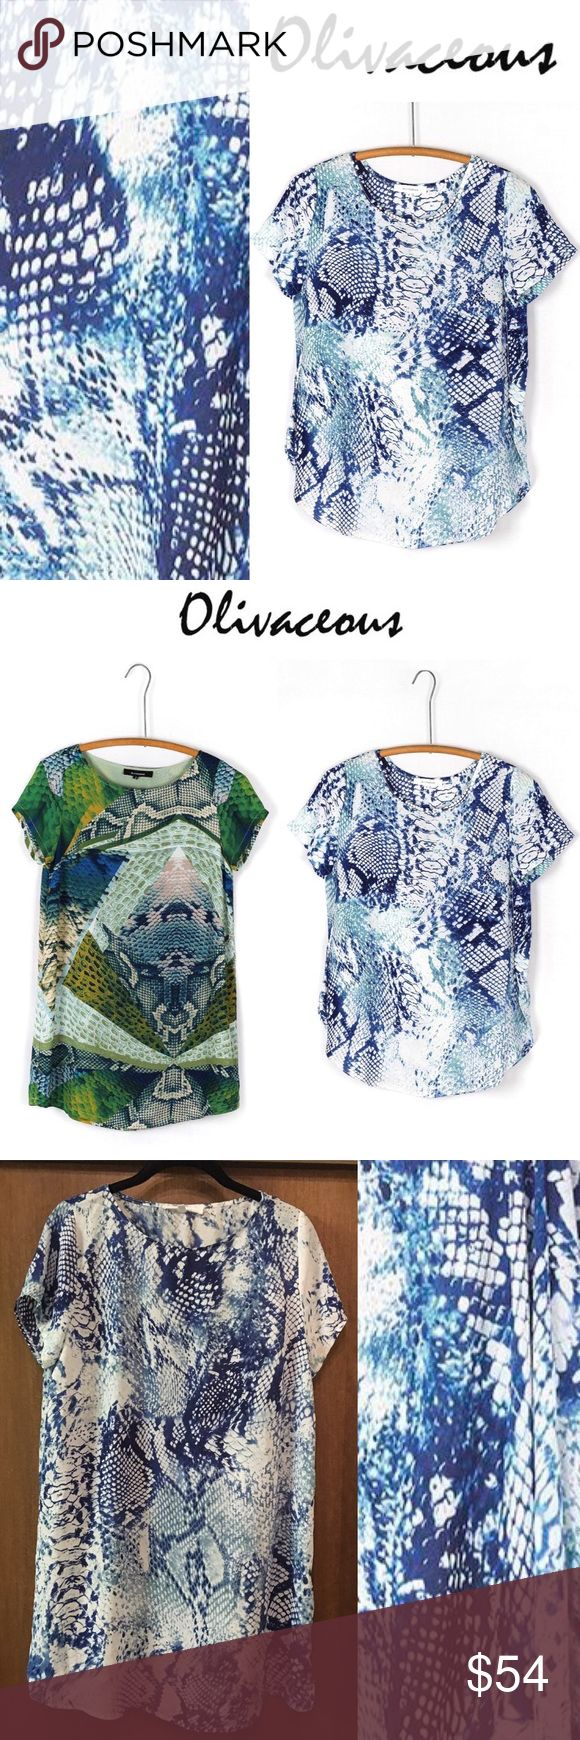 🔥 90% OFF NWOT Olivaceous Blue Snakeskin Tunic Olivacious blue and white short sleeve tunic shift dress. Be effortless but chic in this blue and white tunic dress pair with your favorite boot to complete your look. * SIZE LARGE * BRAND NEW WITHOUT TAGS - NEVER WORN * SHOWN IN STOCK PHOTOS ARE THE SAME PRINT (but in a top) and THE SAME STYLE (but in a slightly different print)  * 100% Polyester Olivaceous Dresses Mini